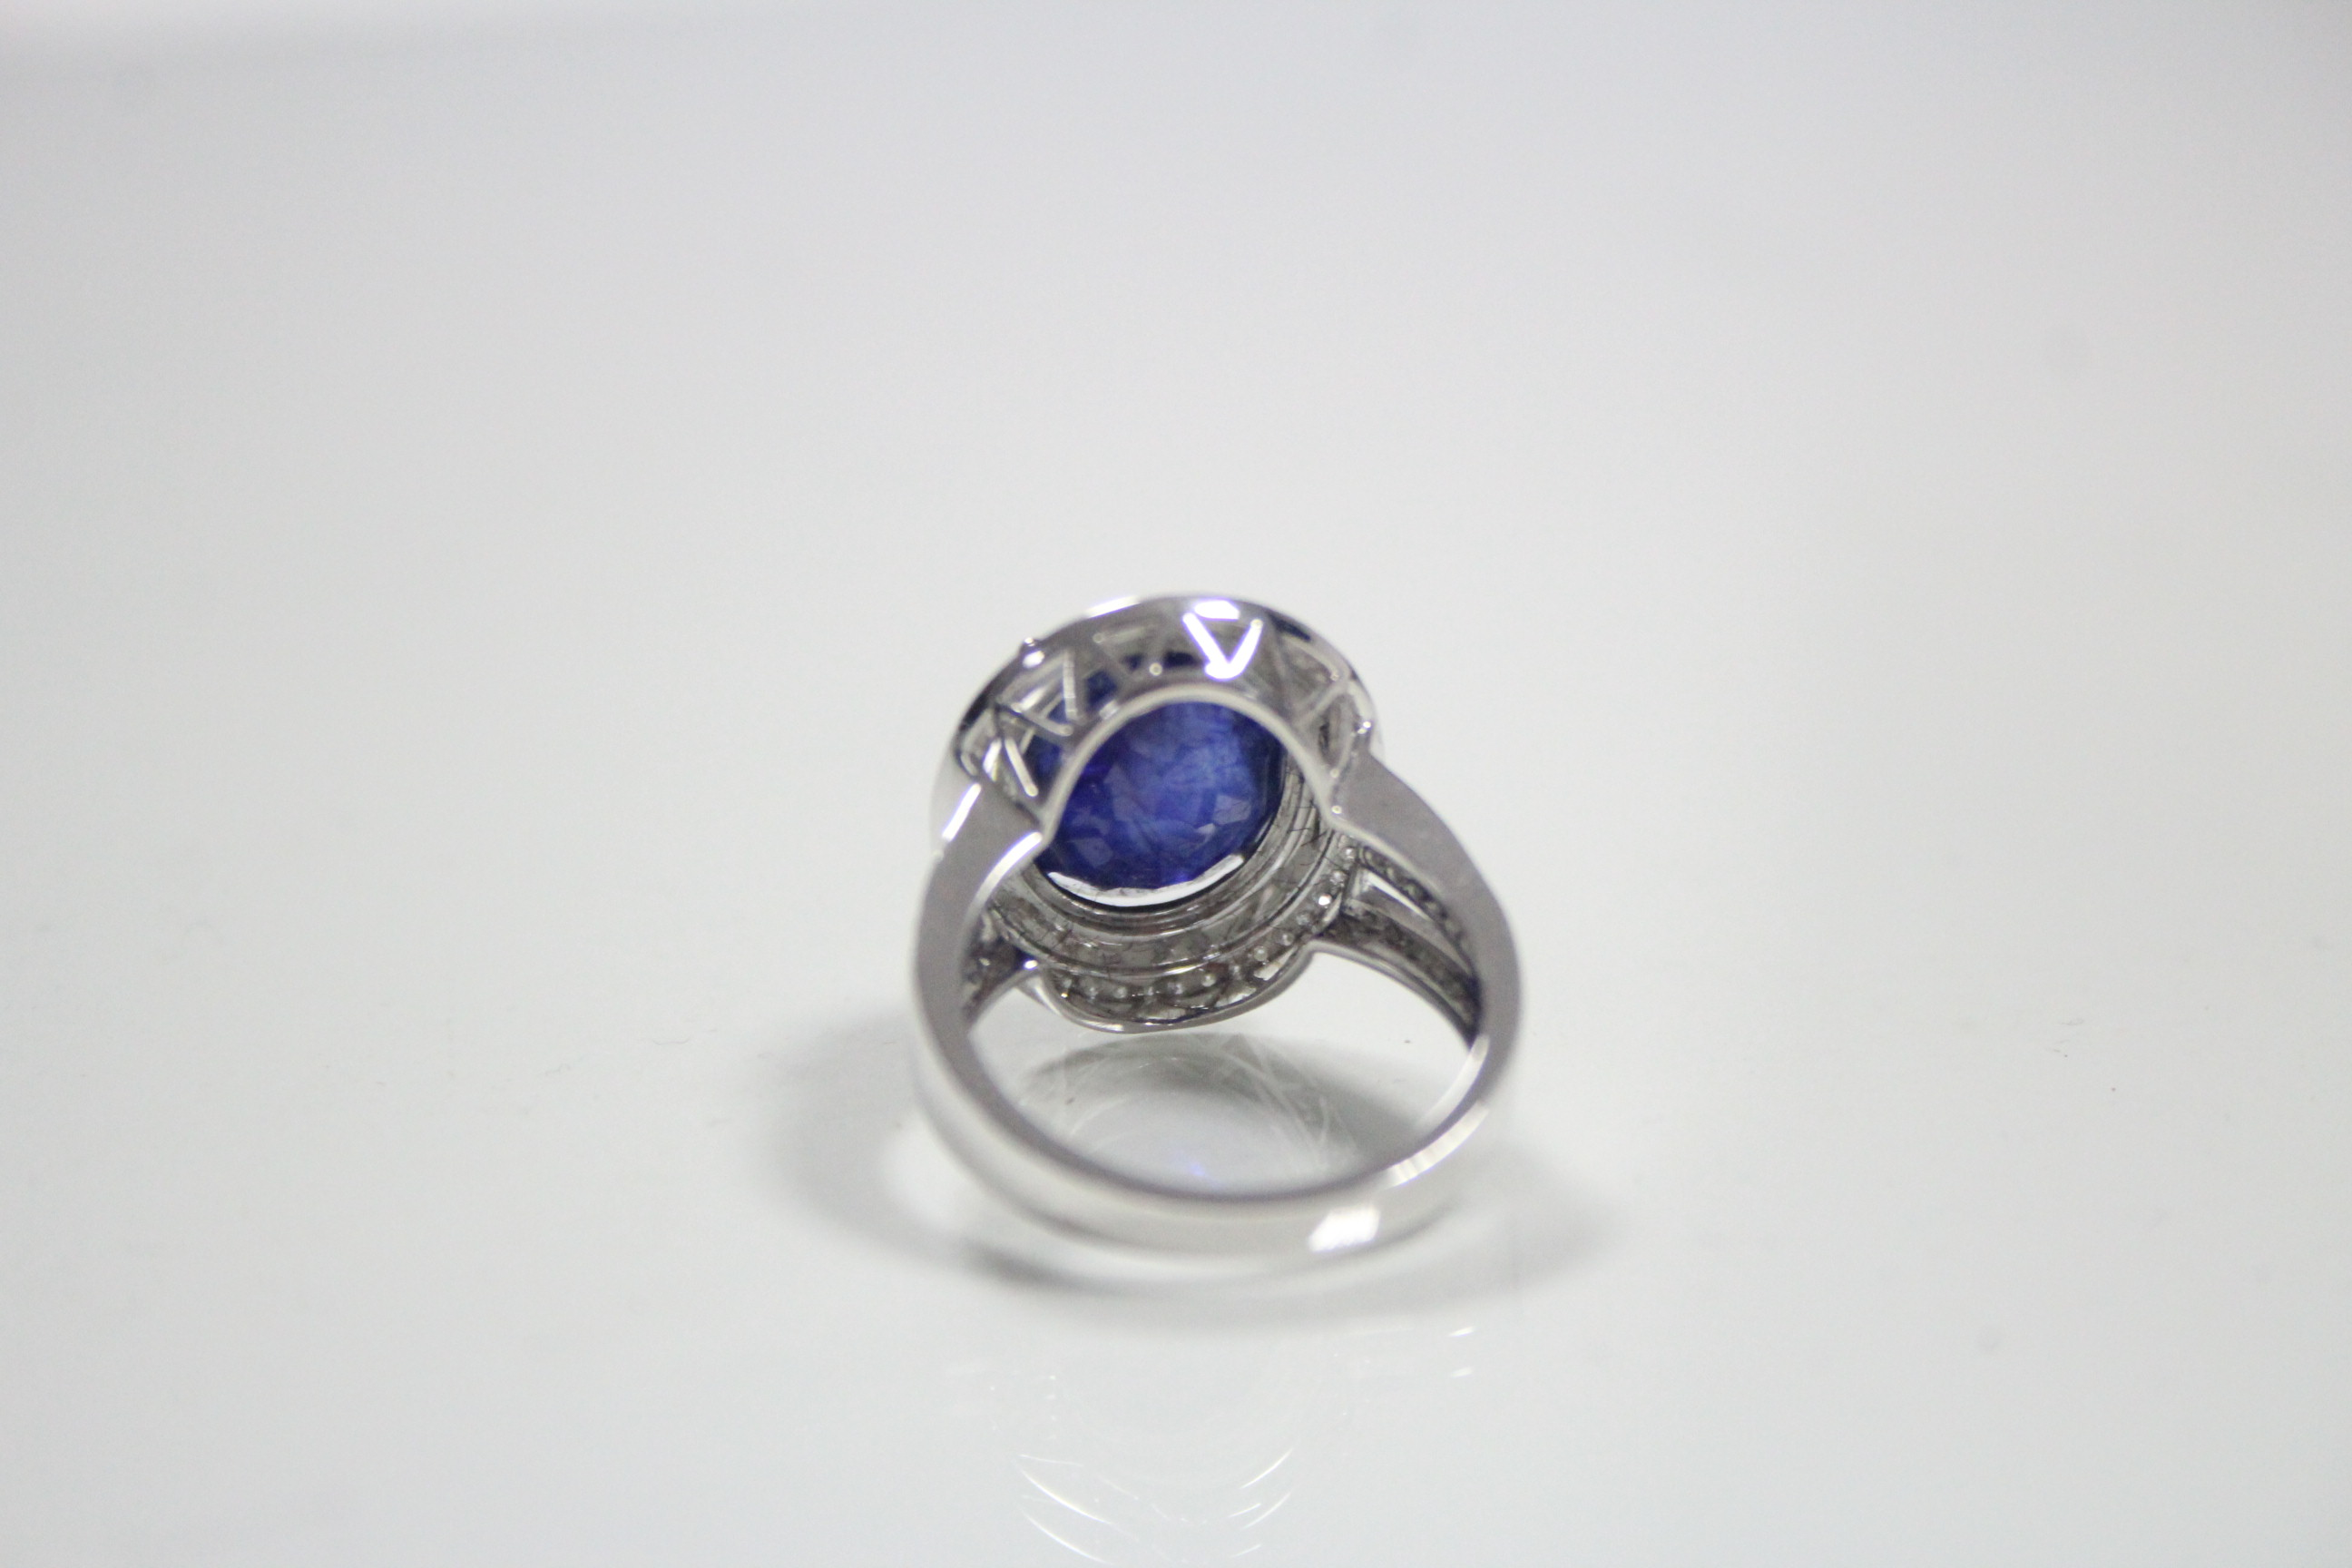 Lot 50 - A white 14K ring set large blue oval-cut gemstone within a double border of small diamonds.